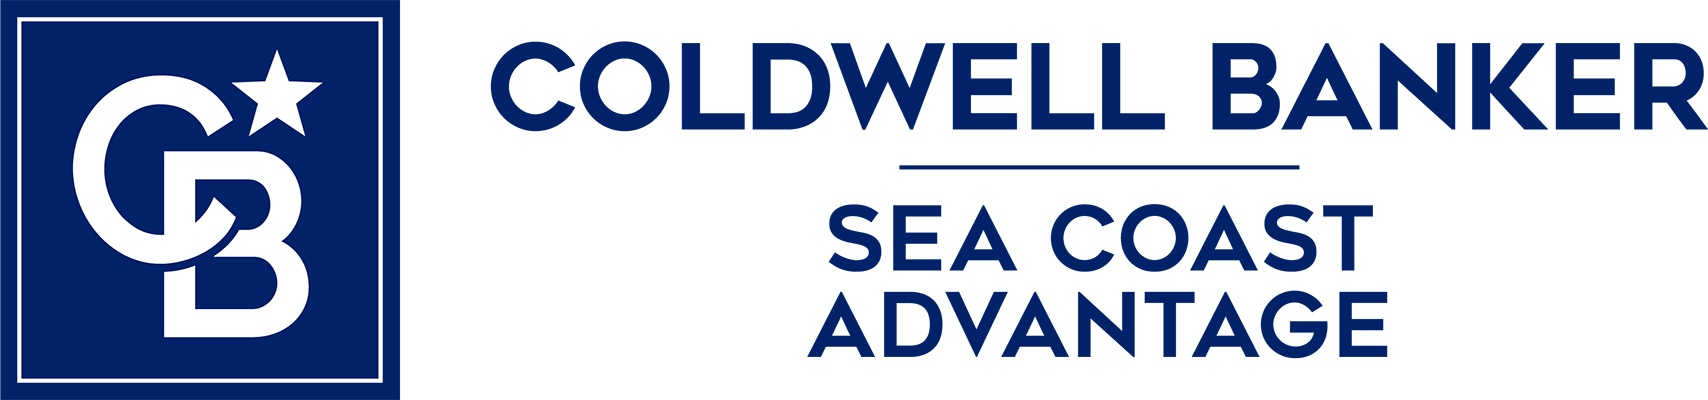 Derrick Lasley - Coldwell Banker Sea Coast Advantage Realty